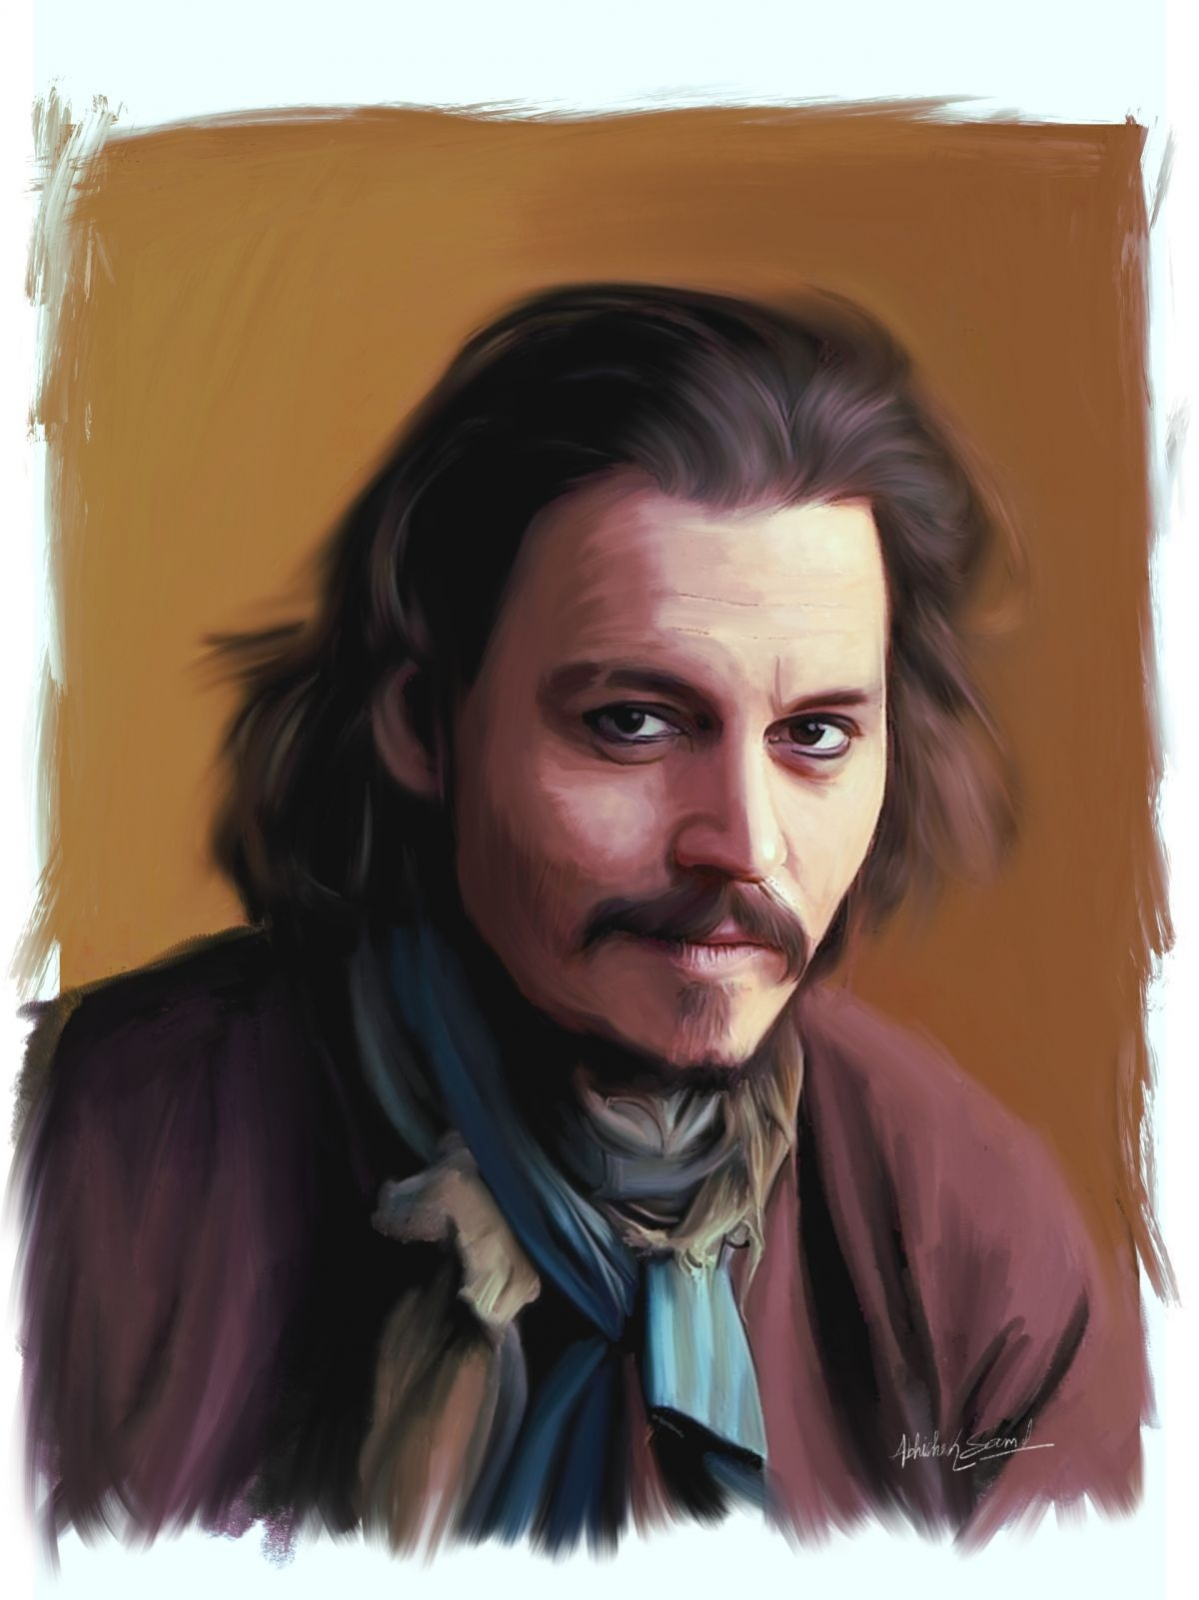 digital painting celebrity portrait johnny depp by abhishek samal